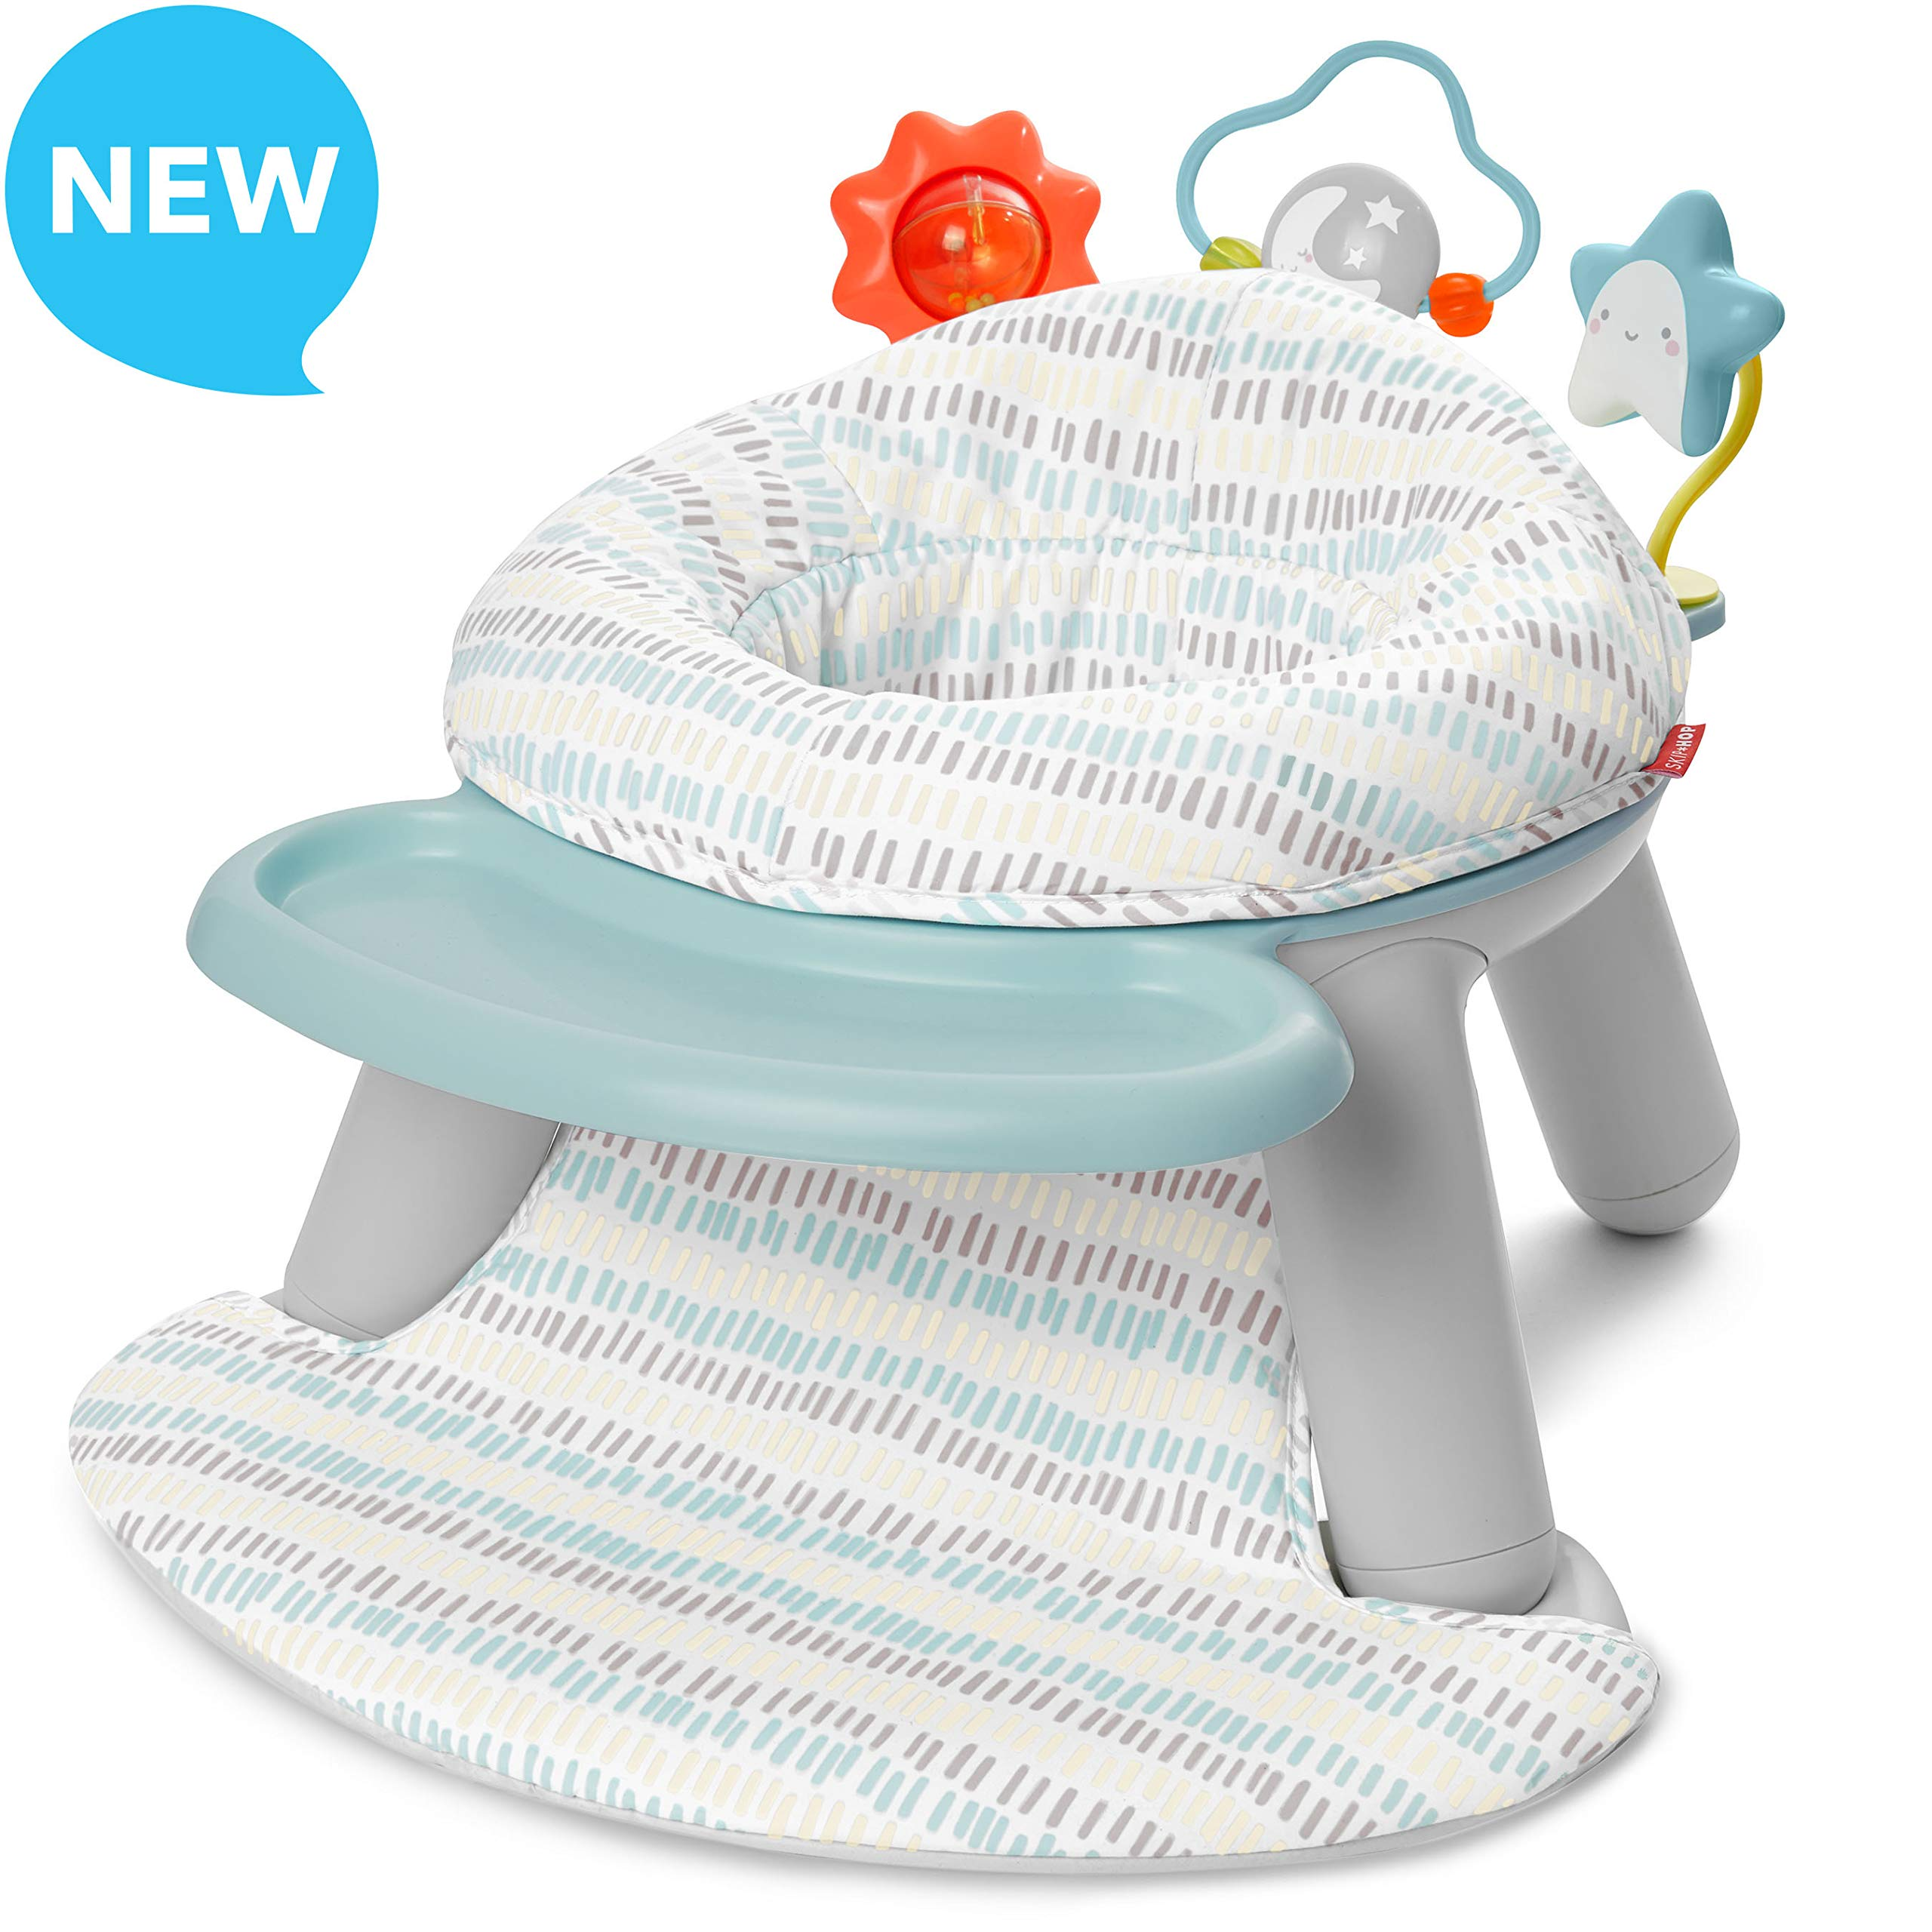 Skip Hop Silver Lining Cloud Baby Chair: 2-in-1 Sit-up Floor Seat & Infant Activity Seat by Skip Hop